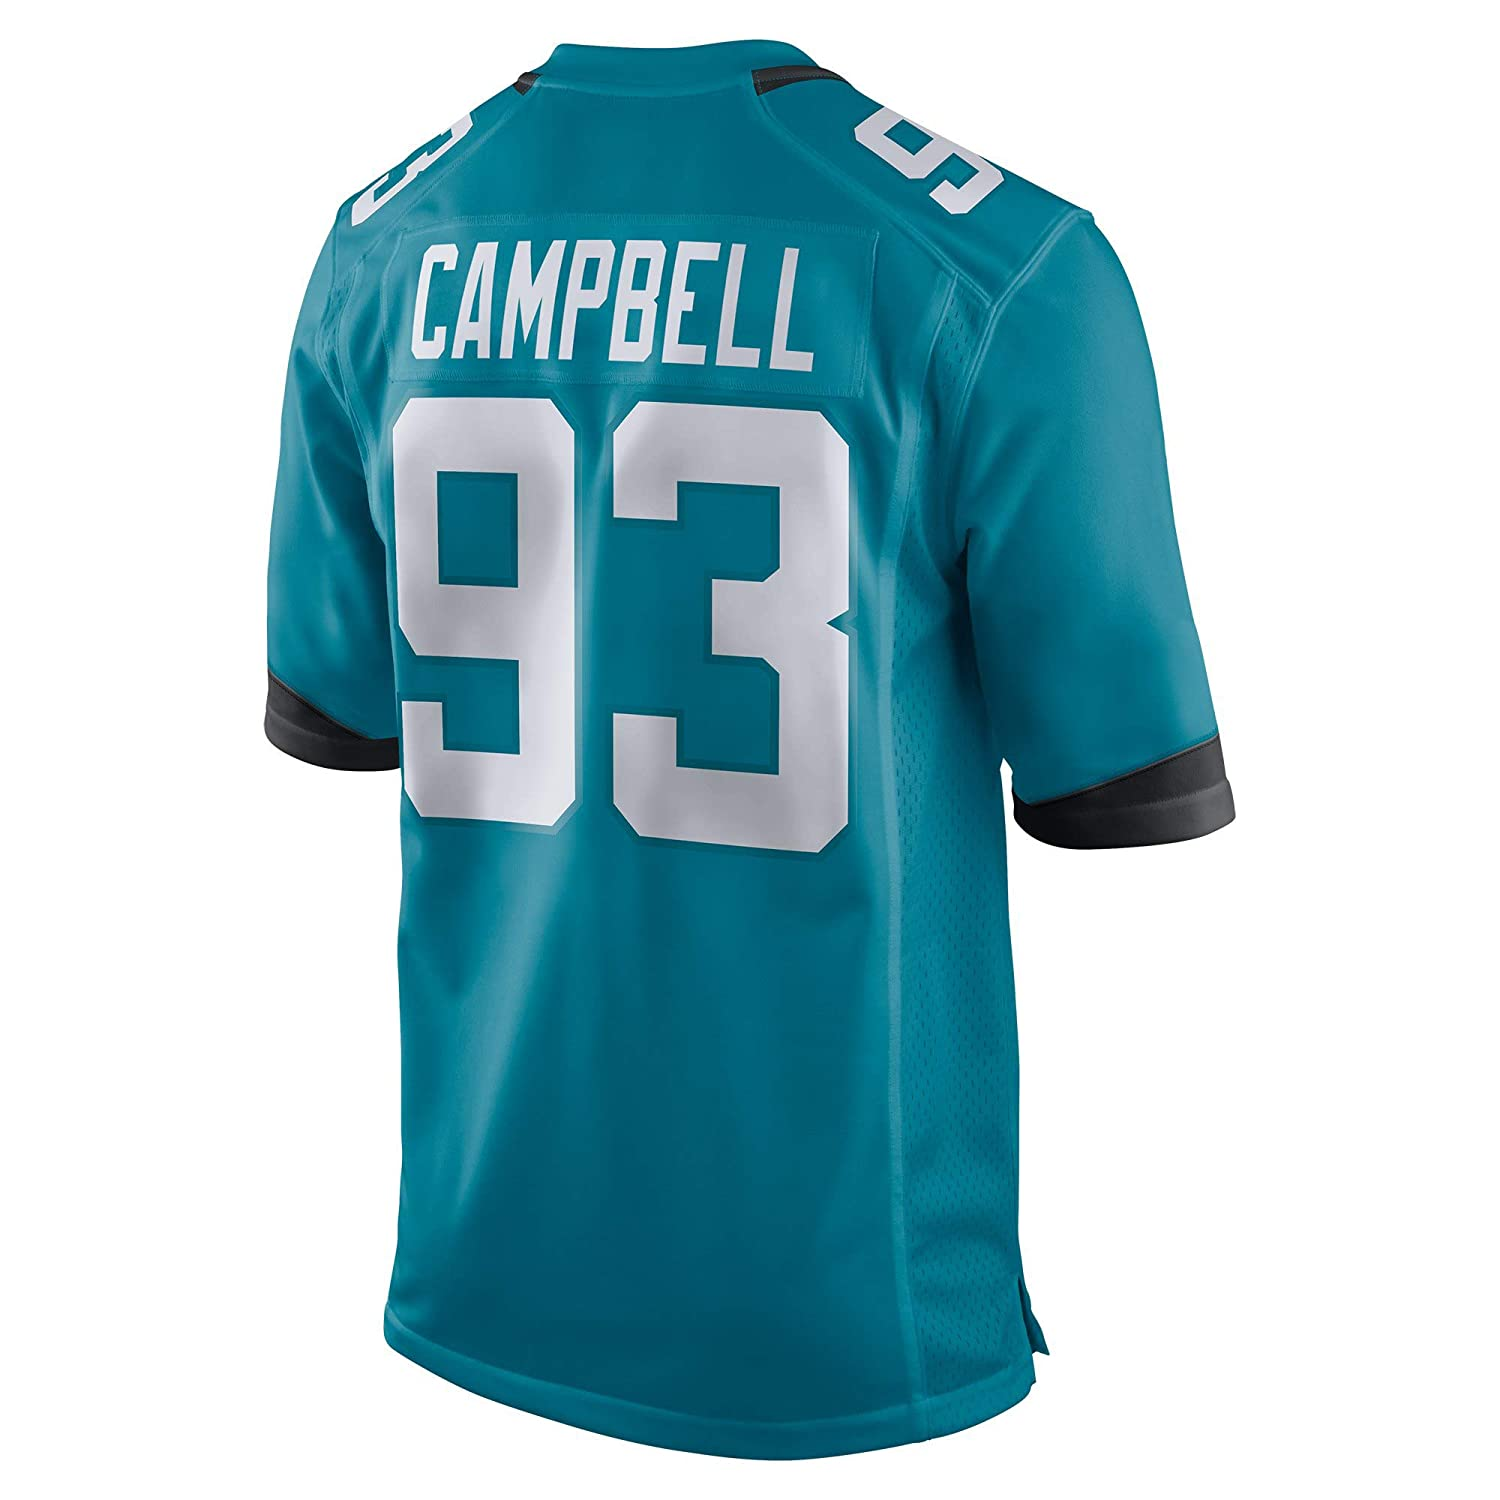 Mens//Womens//Youth/_Calais/_Campbell/_Teal/_New/_2018/_Game/_Jersey